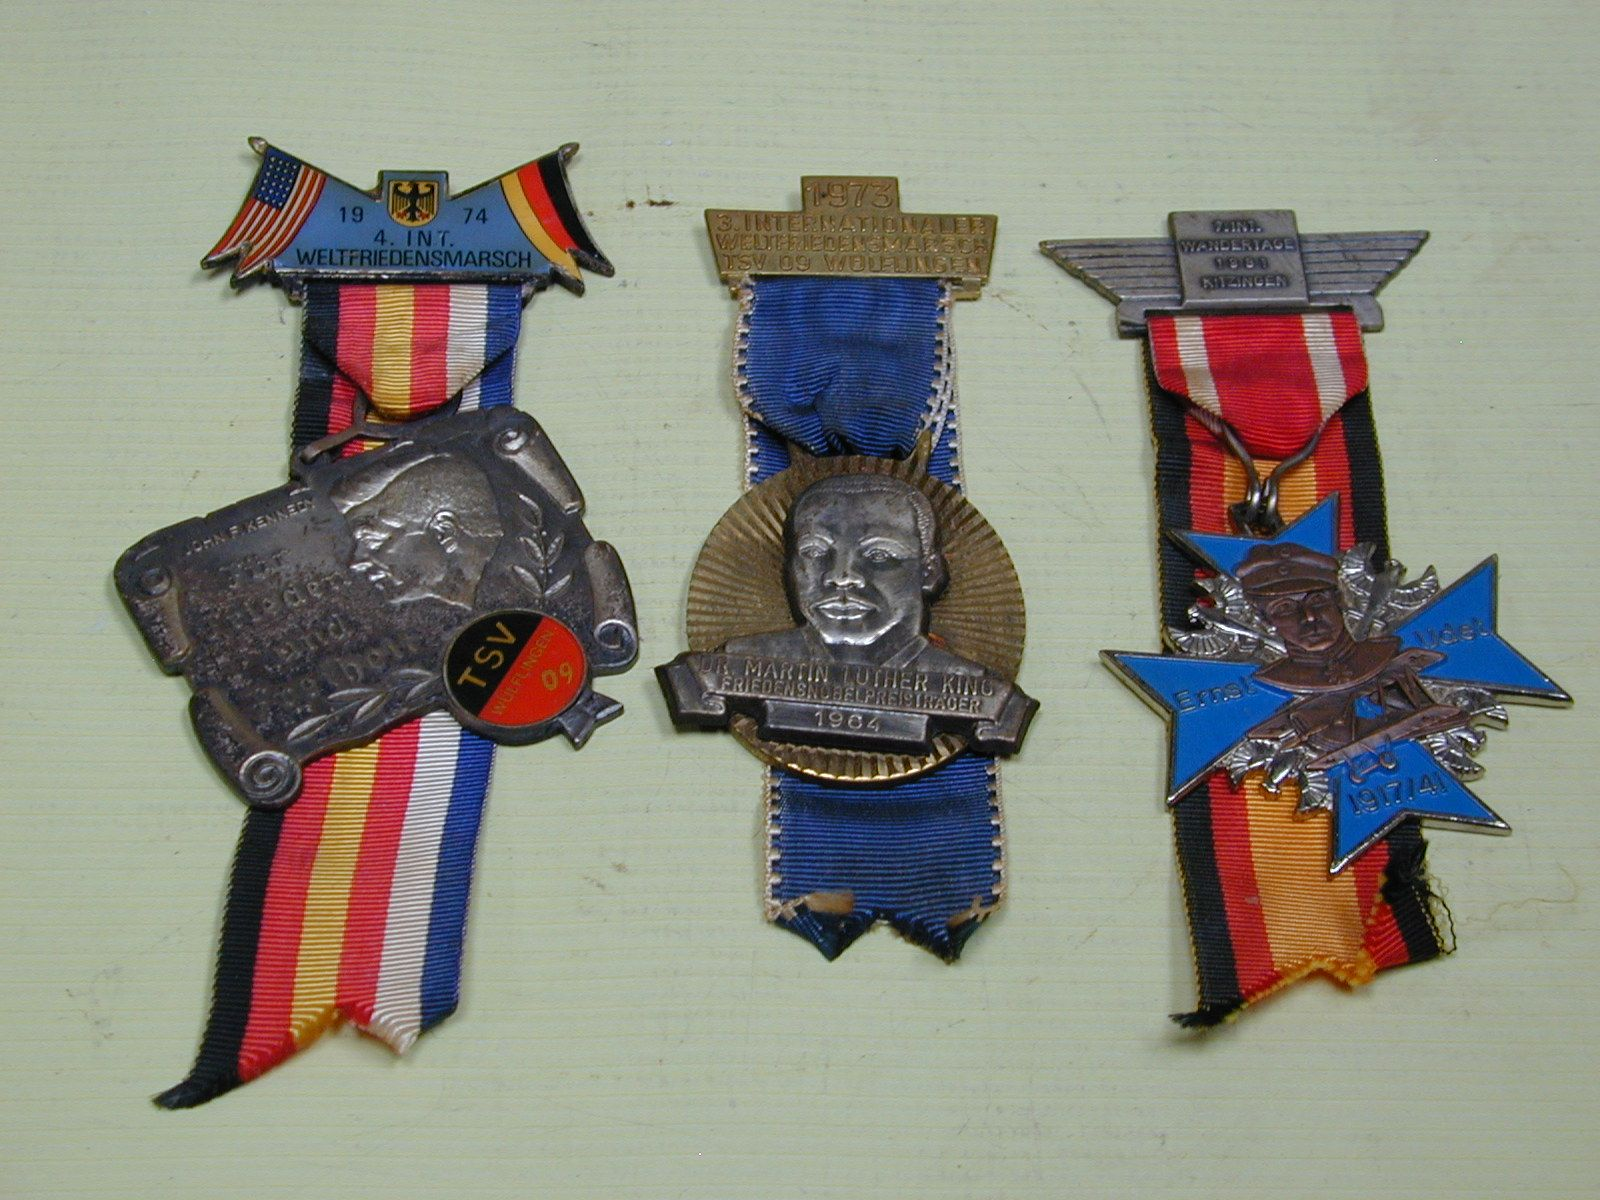 Volks Vander-Tag (People's Walk Day) Medals - I have a whole collection of these darn things...